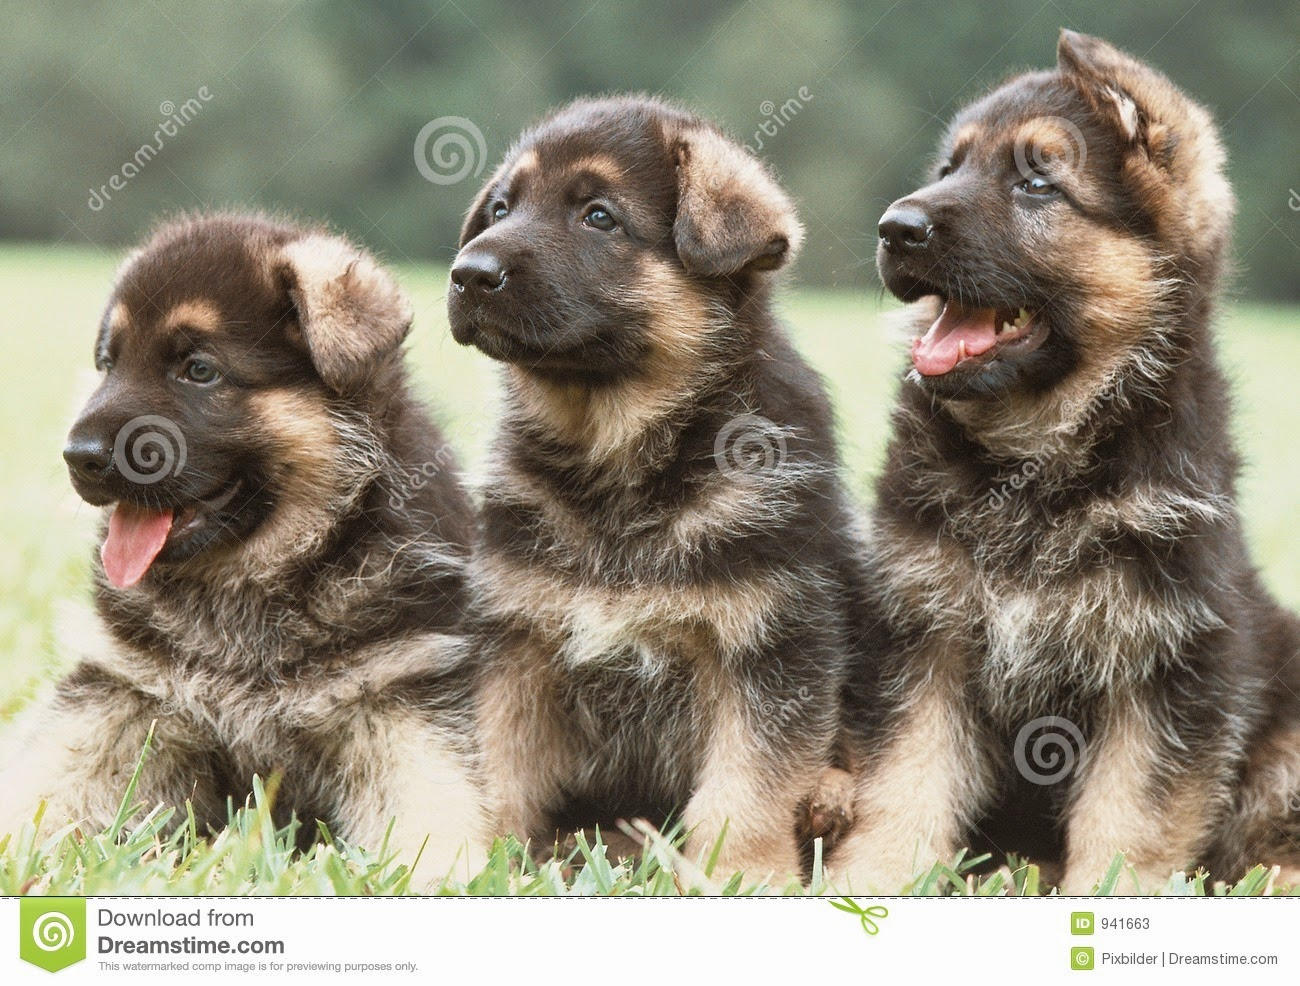 Germany clipart german shepherd puppy The Jungle: Rules Sheppard Rules